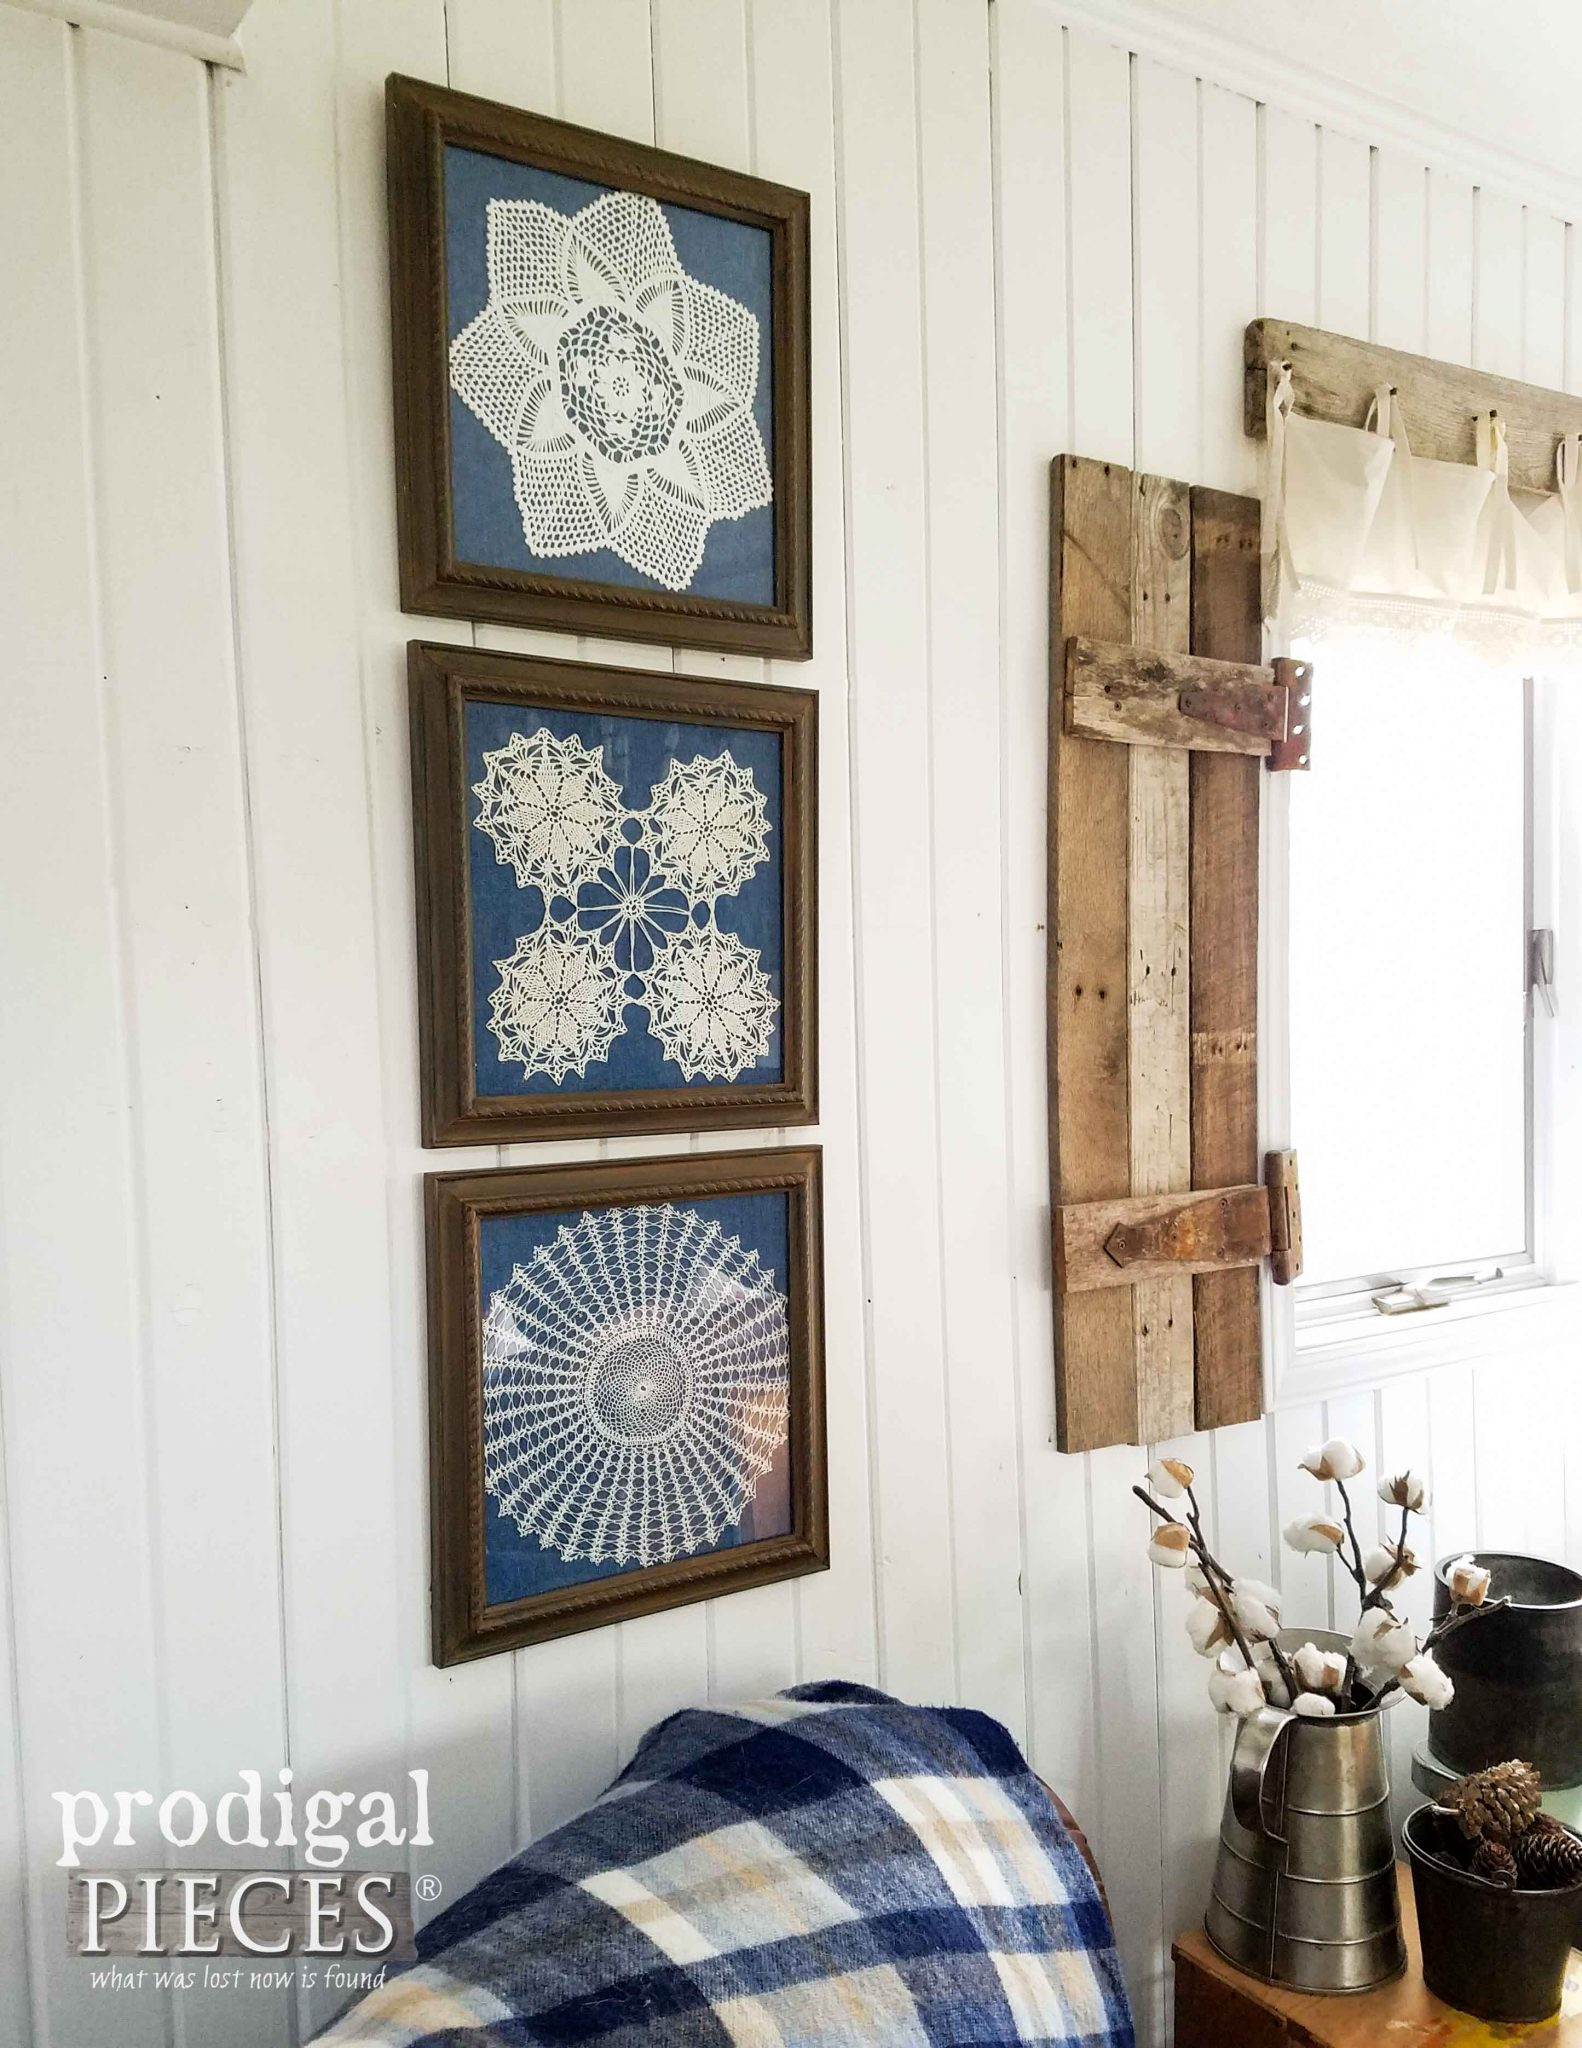 Repurposed Doily Wall Art for Farmhouse Decor by Prodigal Pieces | prodigalpieces.com